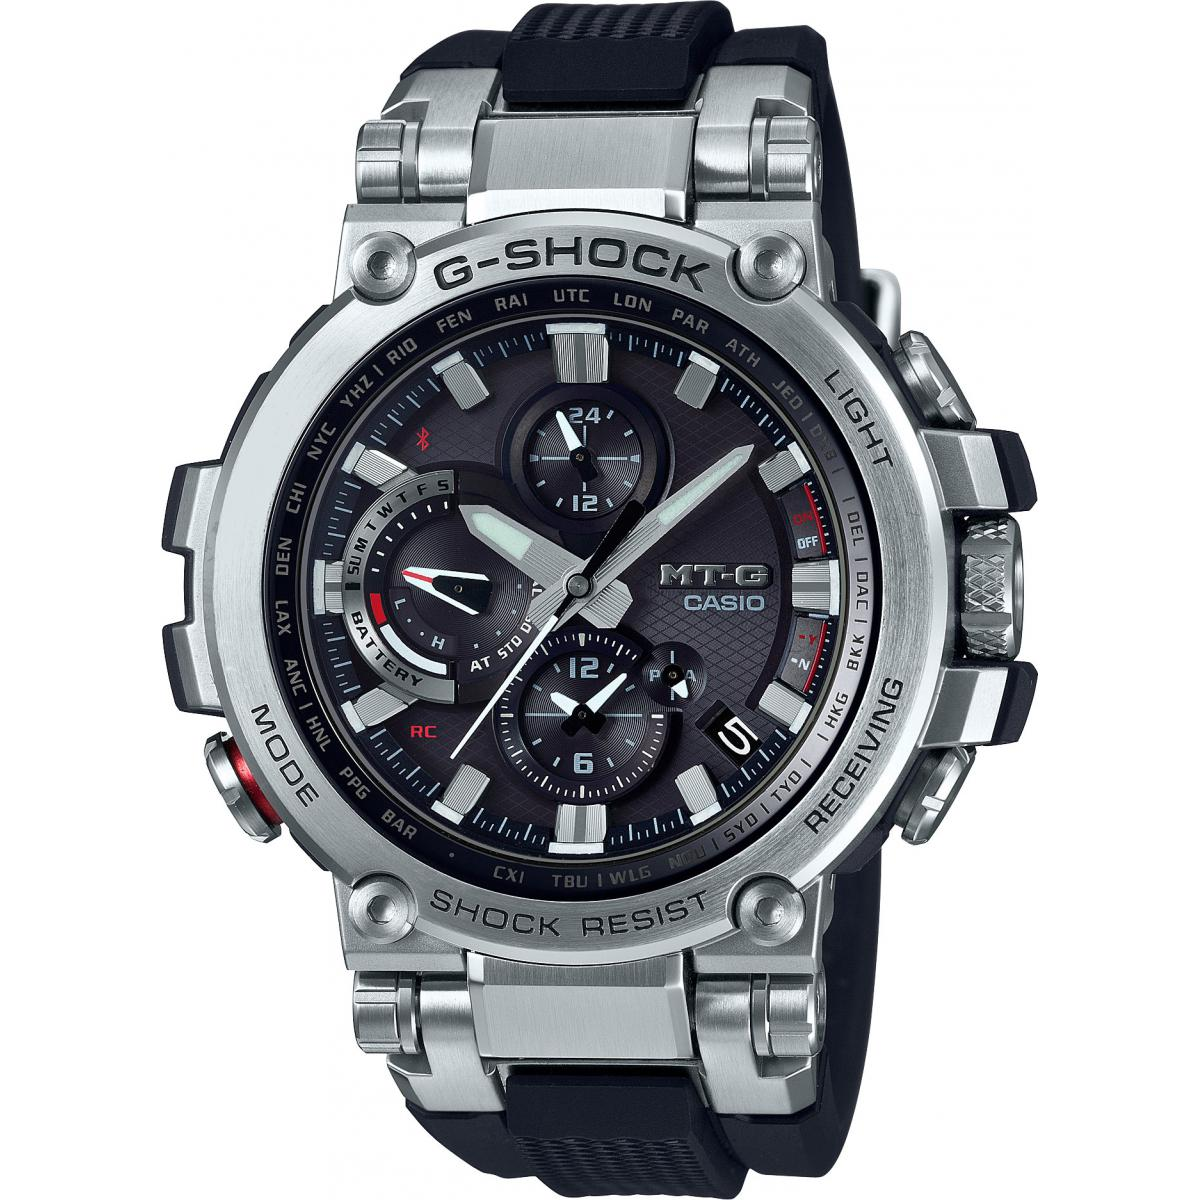 Montre Casio MTG B1000 1AER G Shock MT G Connectée Lunette  jIn5v